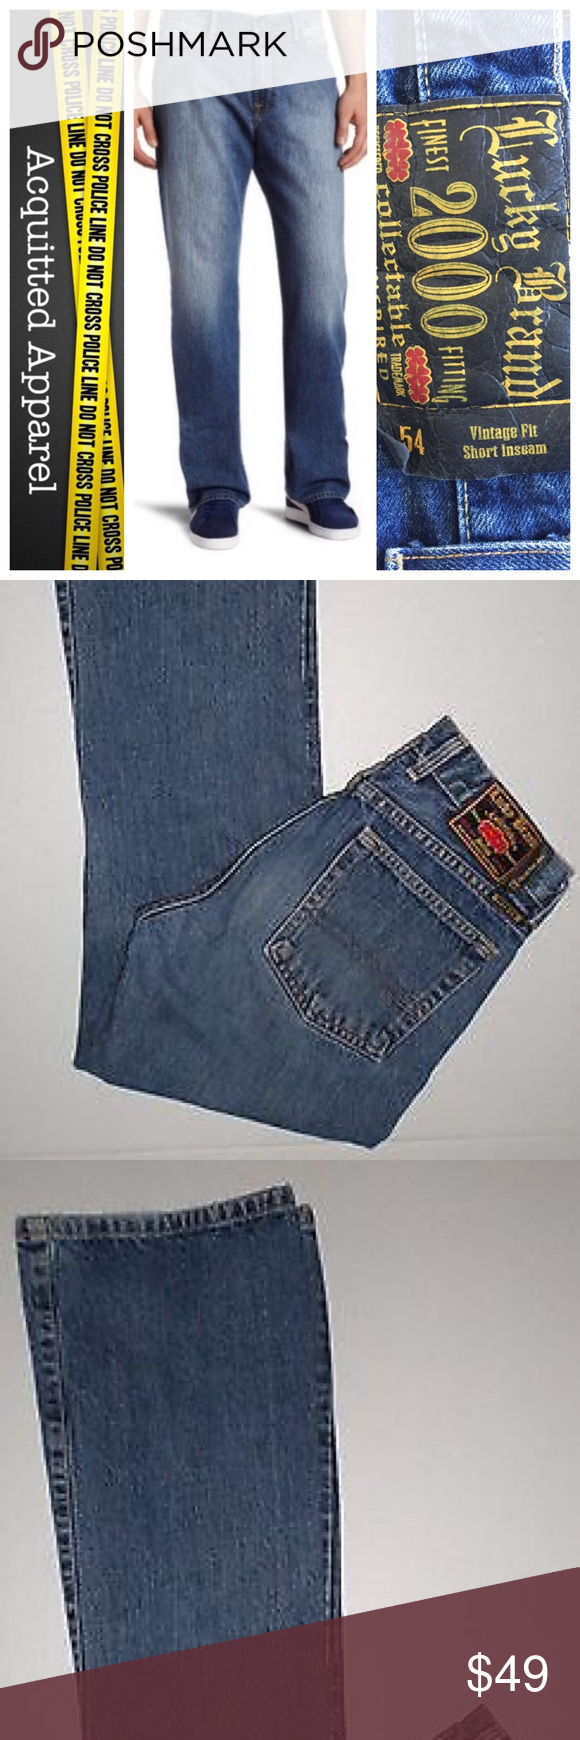 9e030d5f Men's Lucky Brand 54 Vintage Fit Jeans Collectable line. Vintage fit. Short  inseam. Size 34. Button fly. Excellent condition. Like new. Lucky Brand  Jeans ...